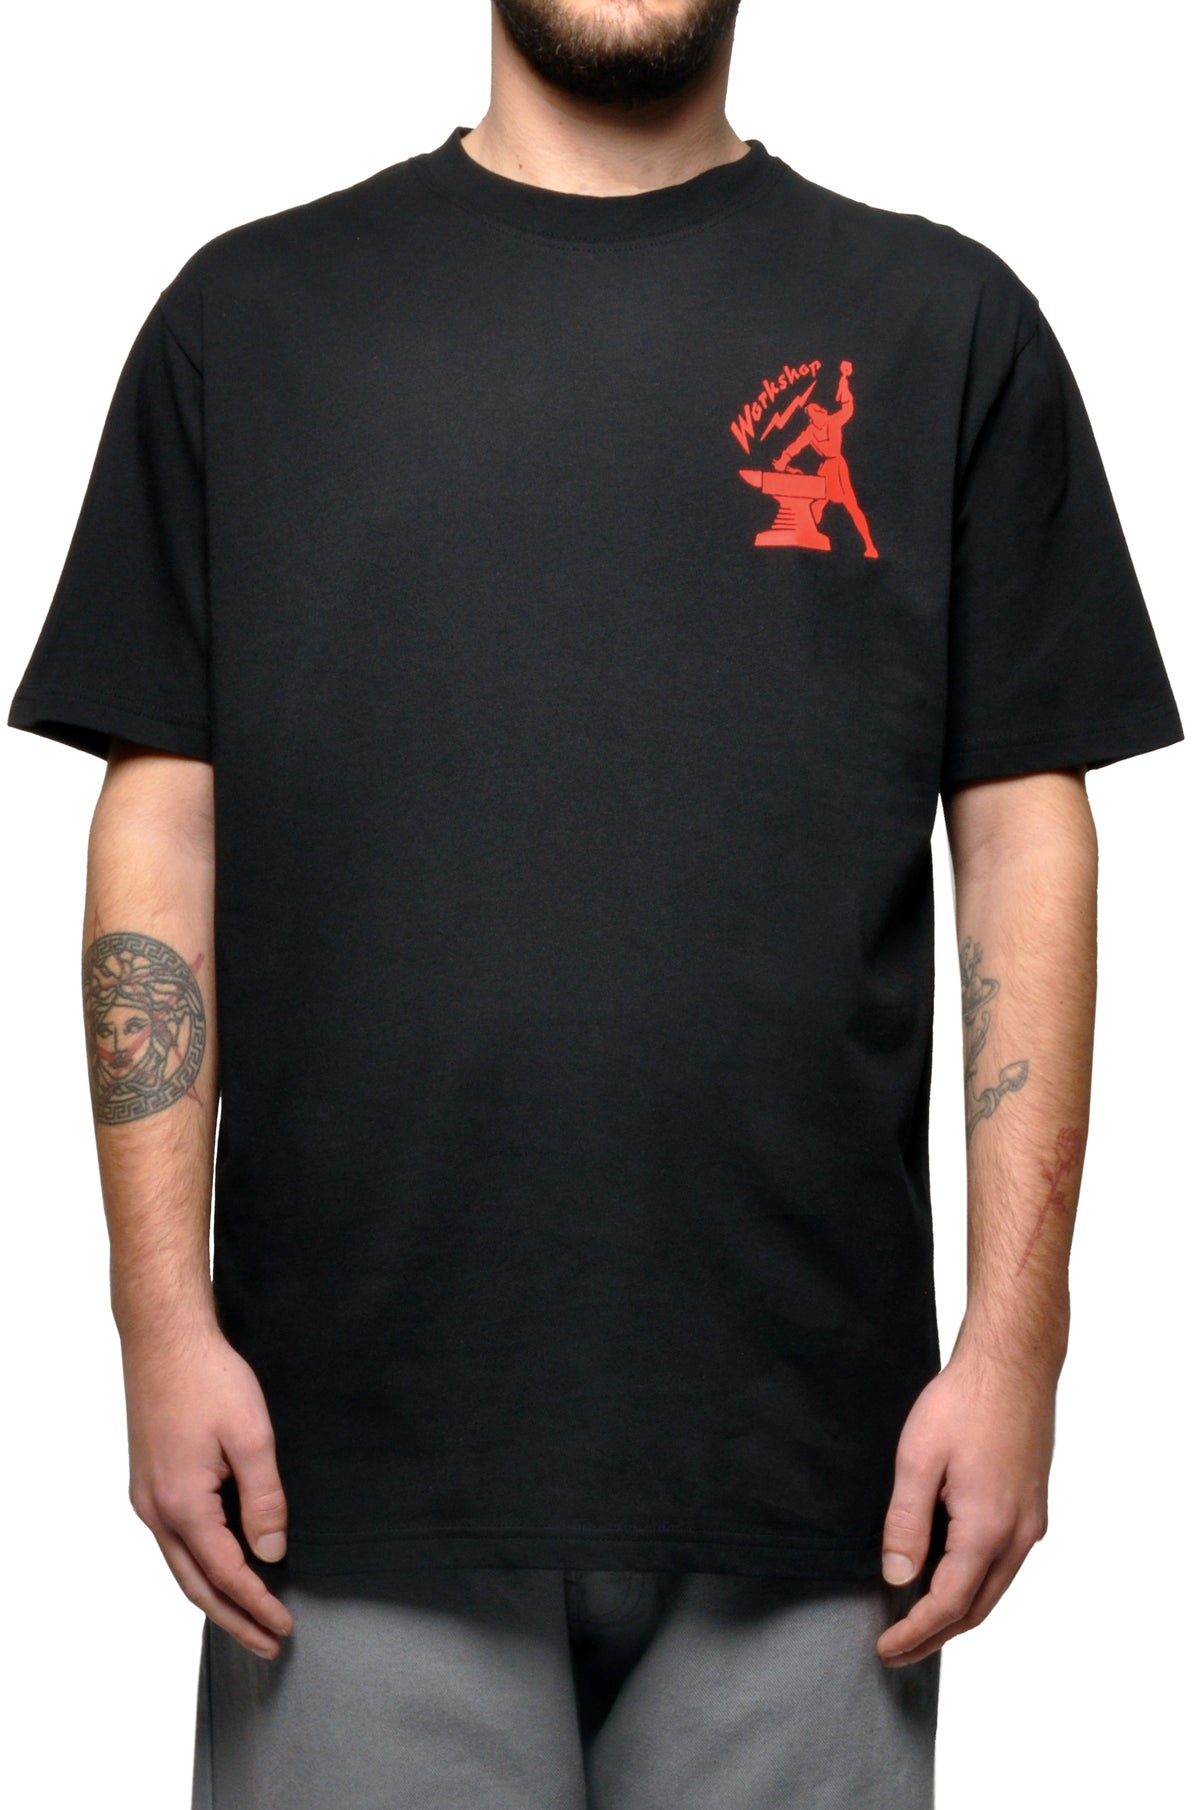 032c COSMIC WORKSHOP 'Hammer' T-Shirt Black - 032c